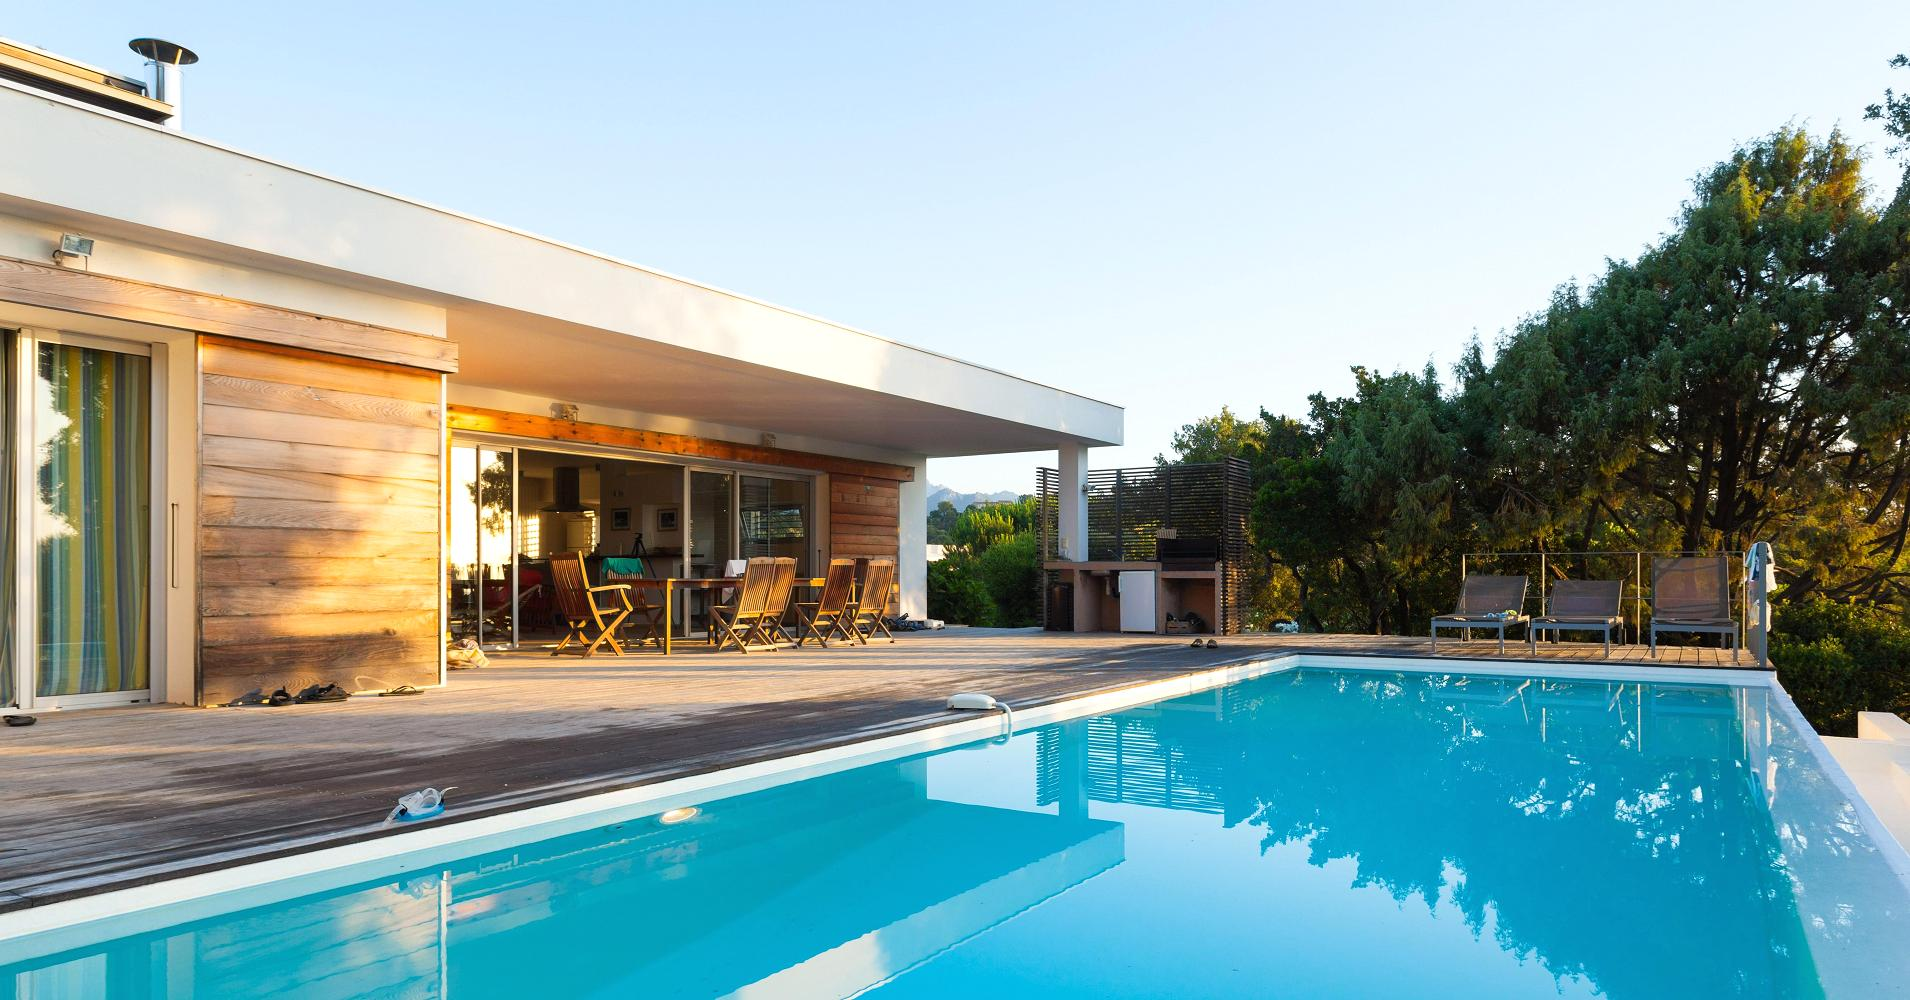 Five hidden risks you'll face if you rent your home for the summer